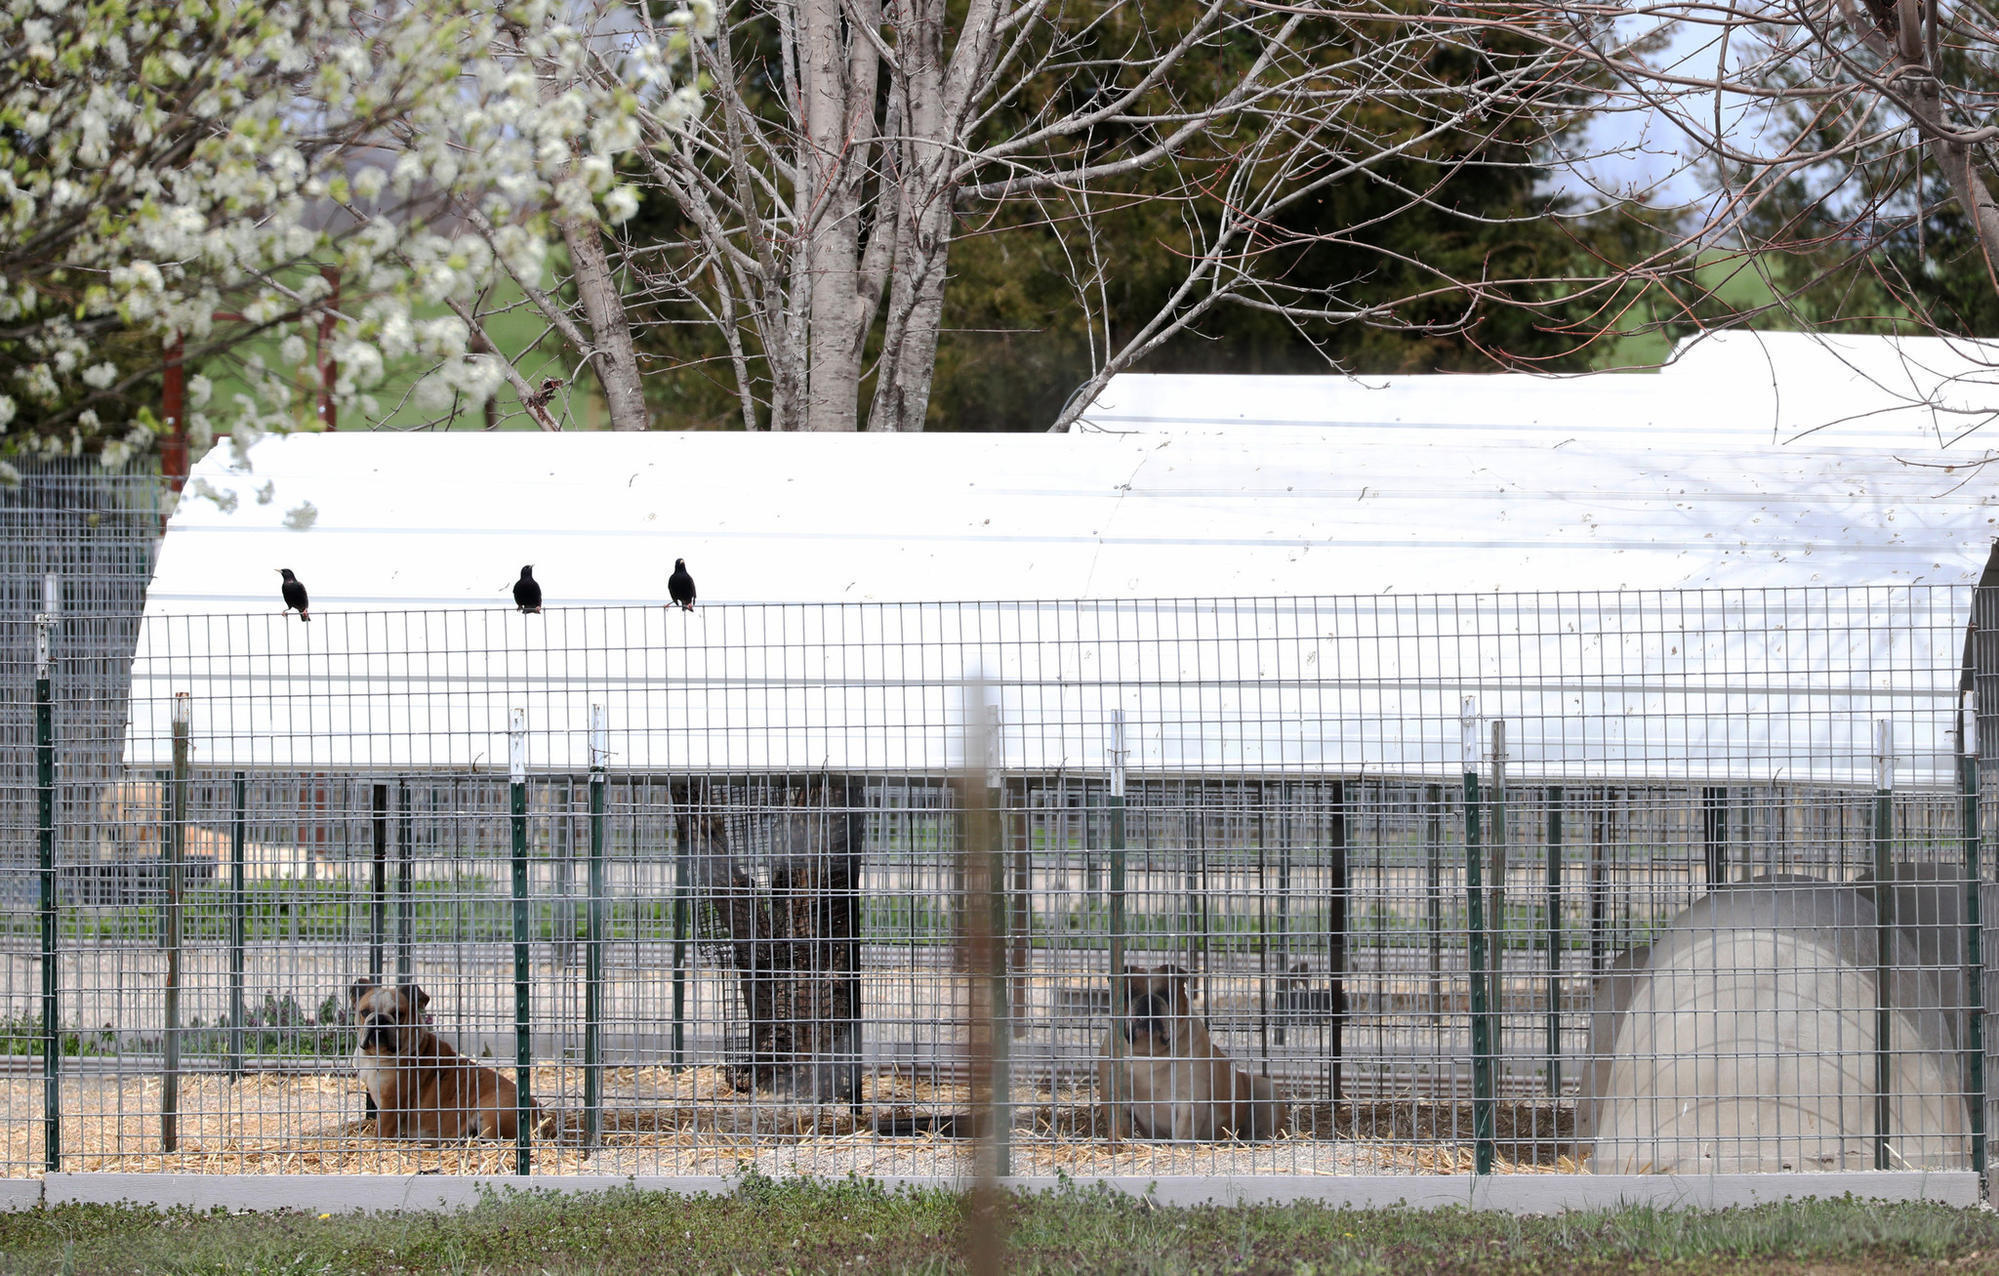 Revised Ordinance Aims To Stop Breeders From Selling Rescue